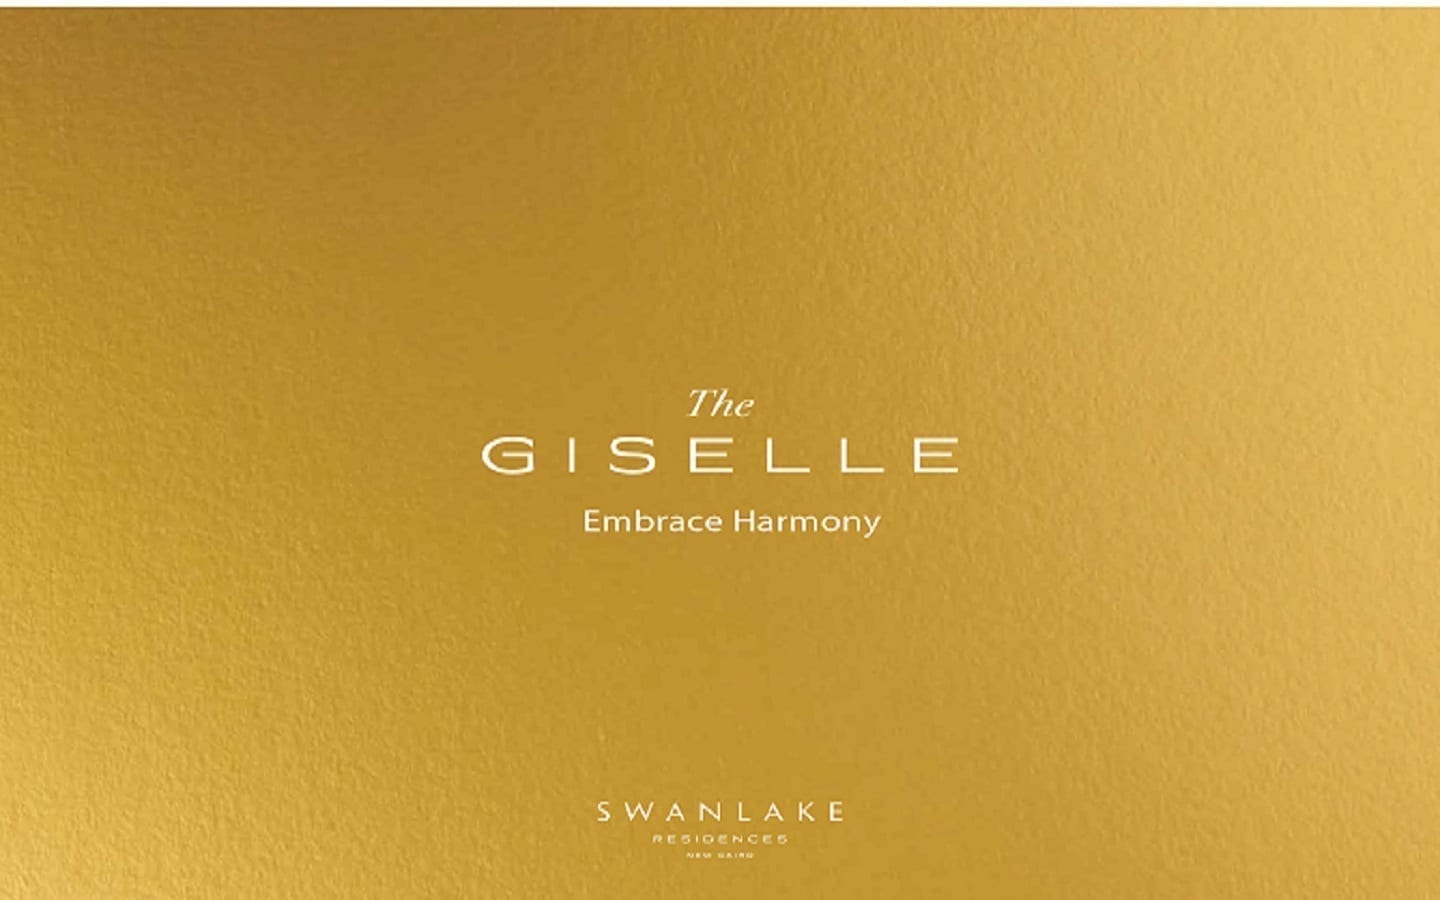 Swan lake Residences New Cairo Giselle - Villas For Sale Compound Swan Lake Residences New Cairo - Master Plan and Prices - 8 Gates Real Estate Egypt 0 (1)